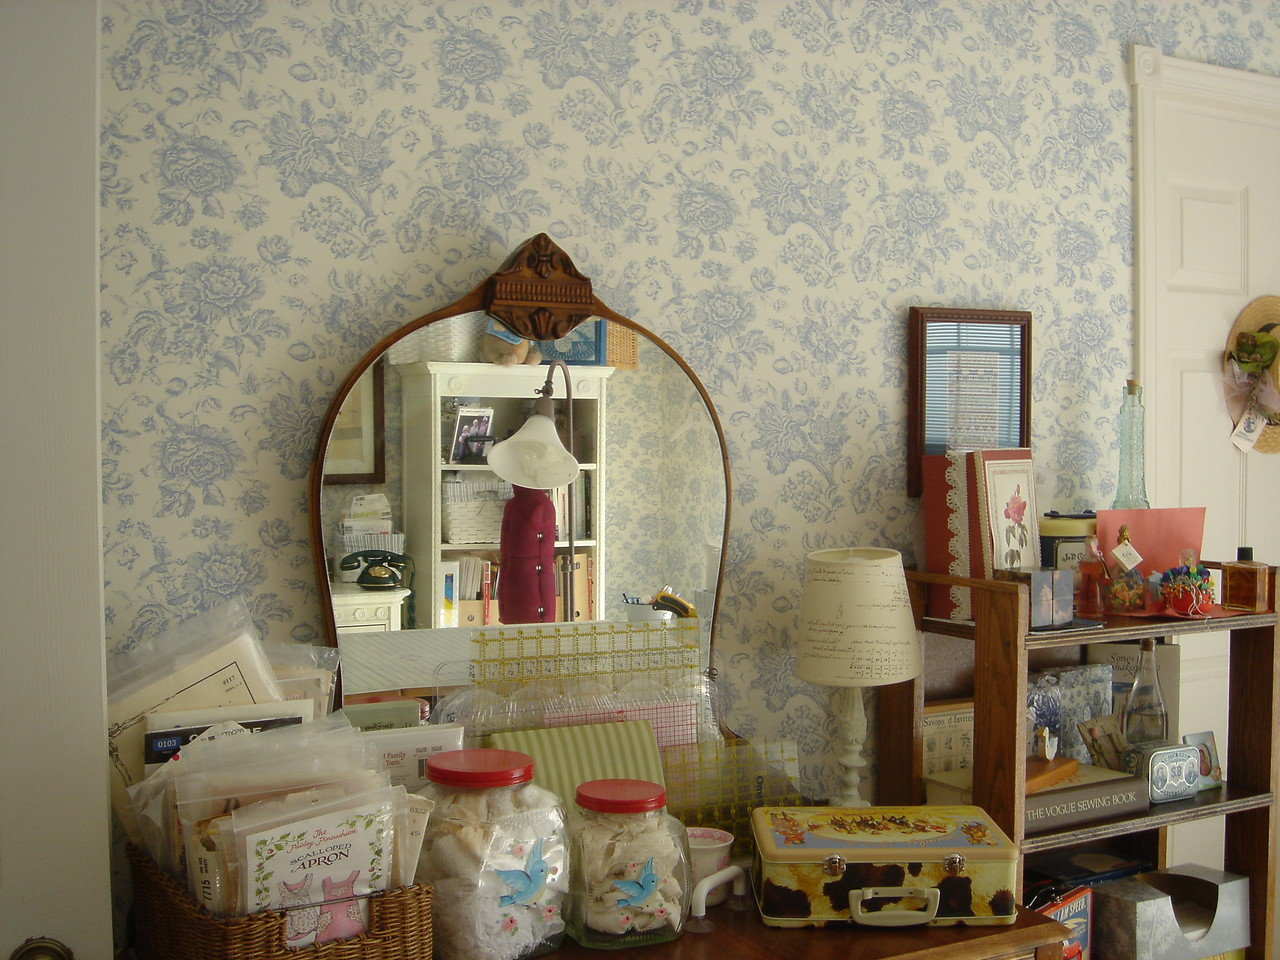 Sewing rooms Sept 2007 020